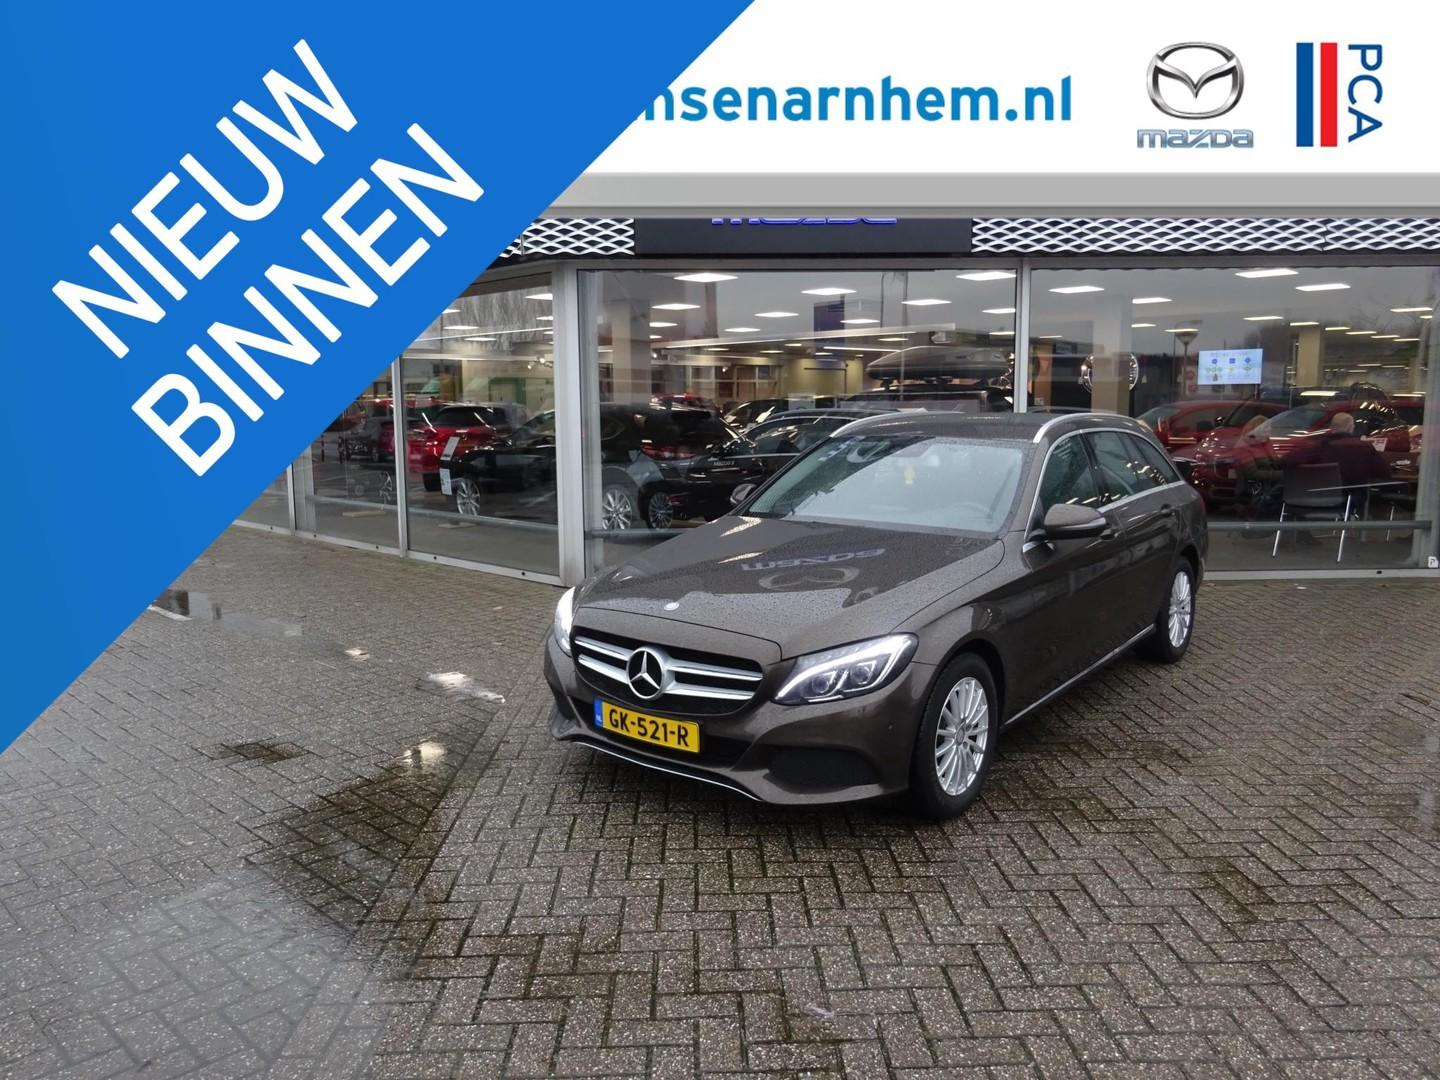 Mercedes-benz C-klasse Estate 180 cdi lease edition , jansen private lease € 650,- p/mnd!